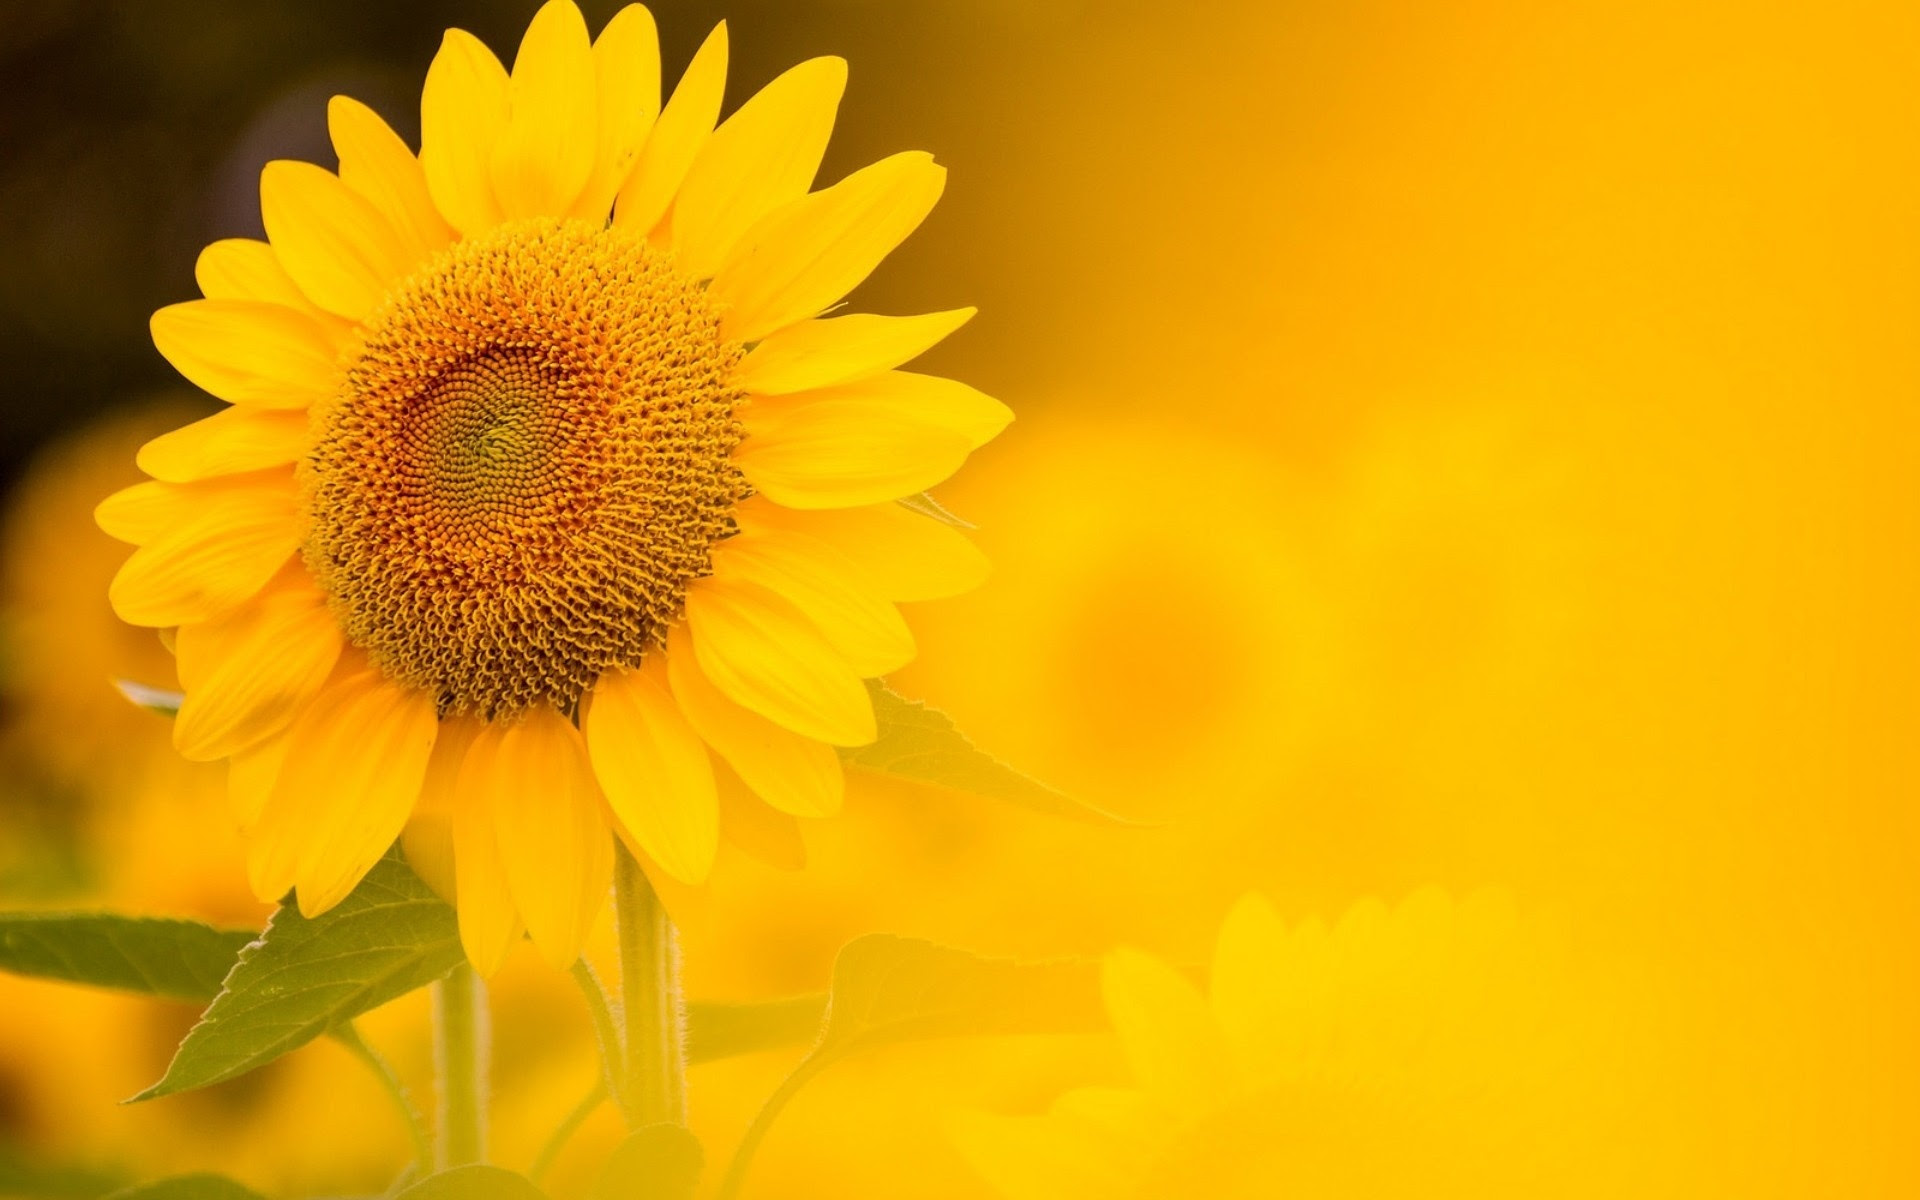 Sunflower Yellow Background Wallpapers - 1920x1200 - 335950